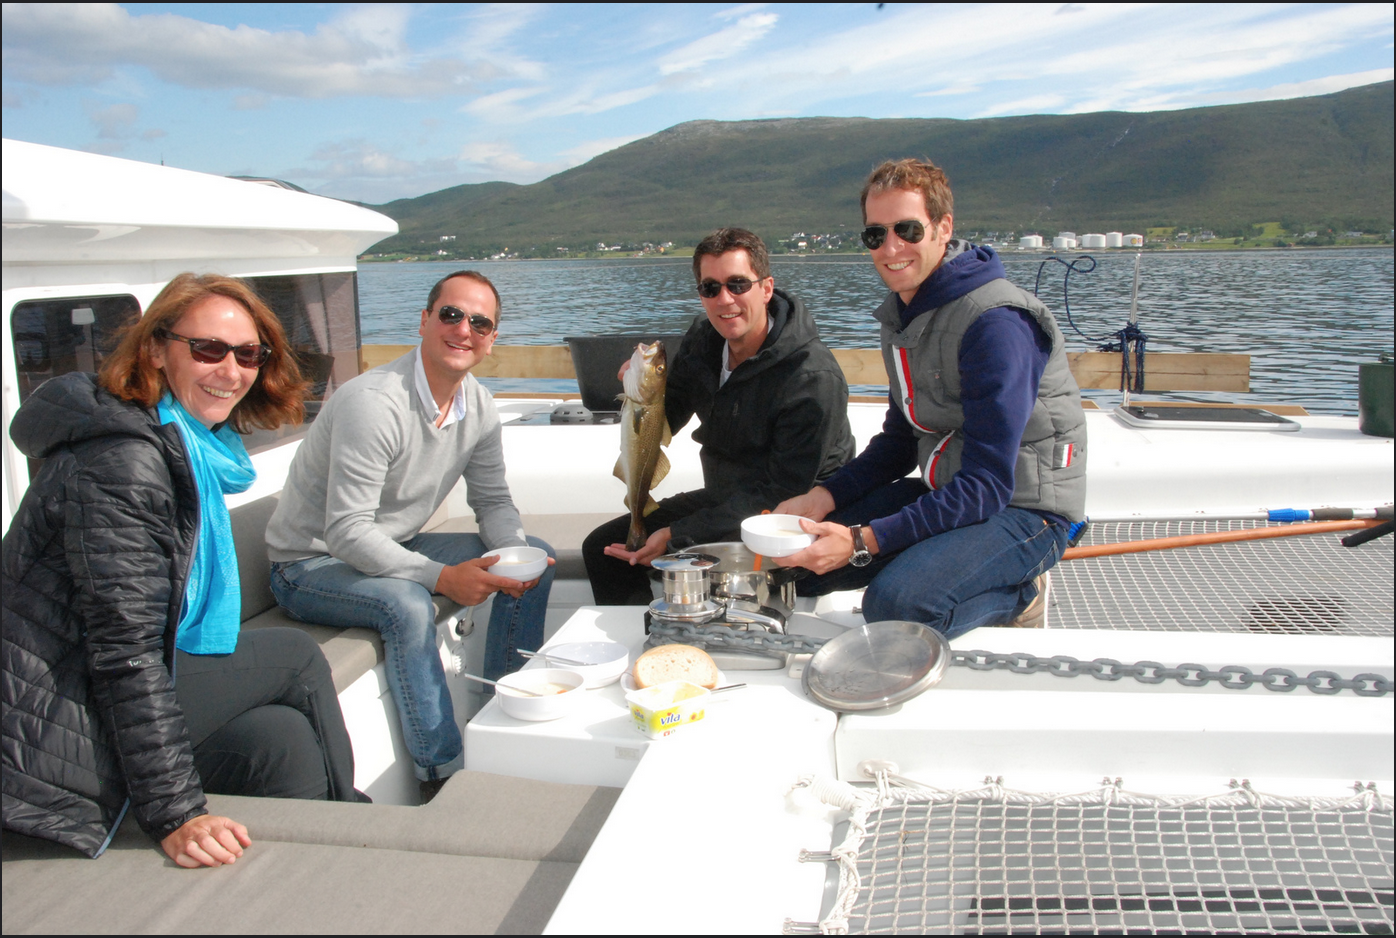 Sail and relax | #Tromsoe | #Fishing |Dinner